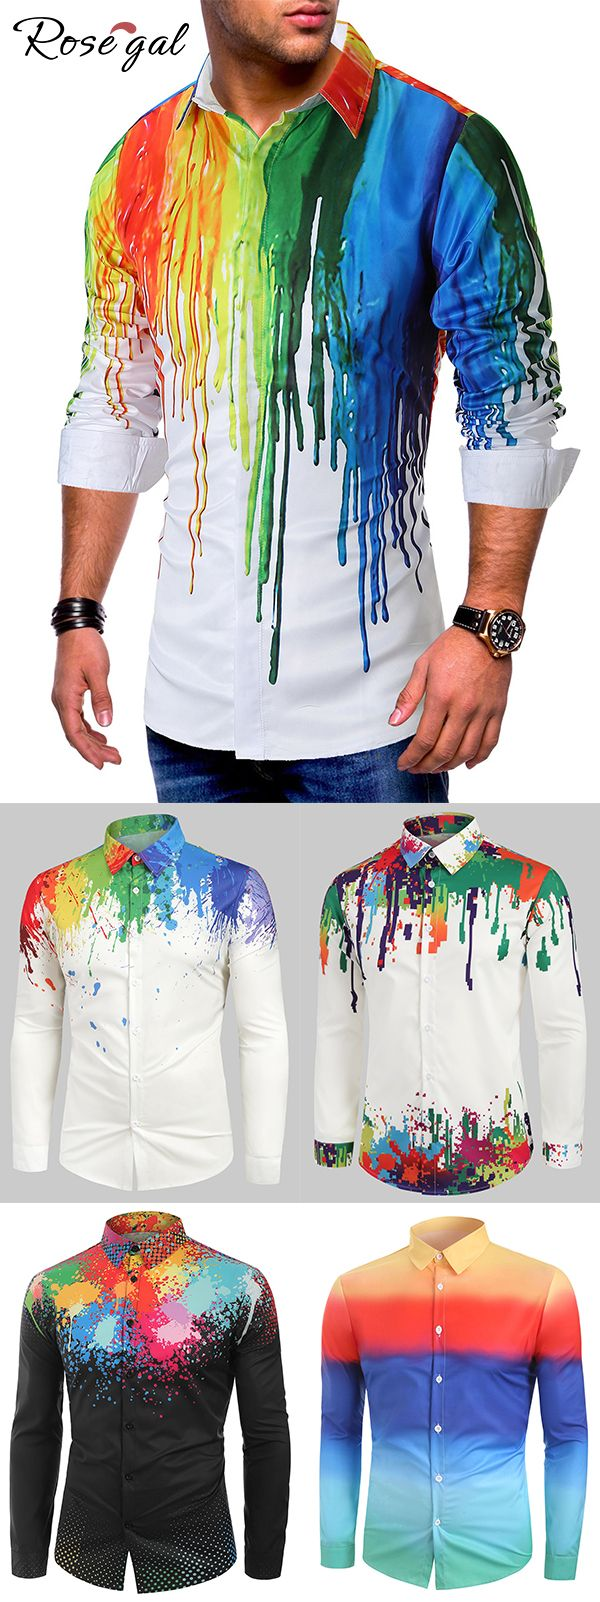 Rosegal Colorful Painting Splatter Print Long Sleeves Casual Shirt mens outfits ideas – Udo Buchinger